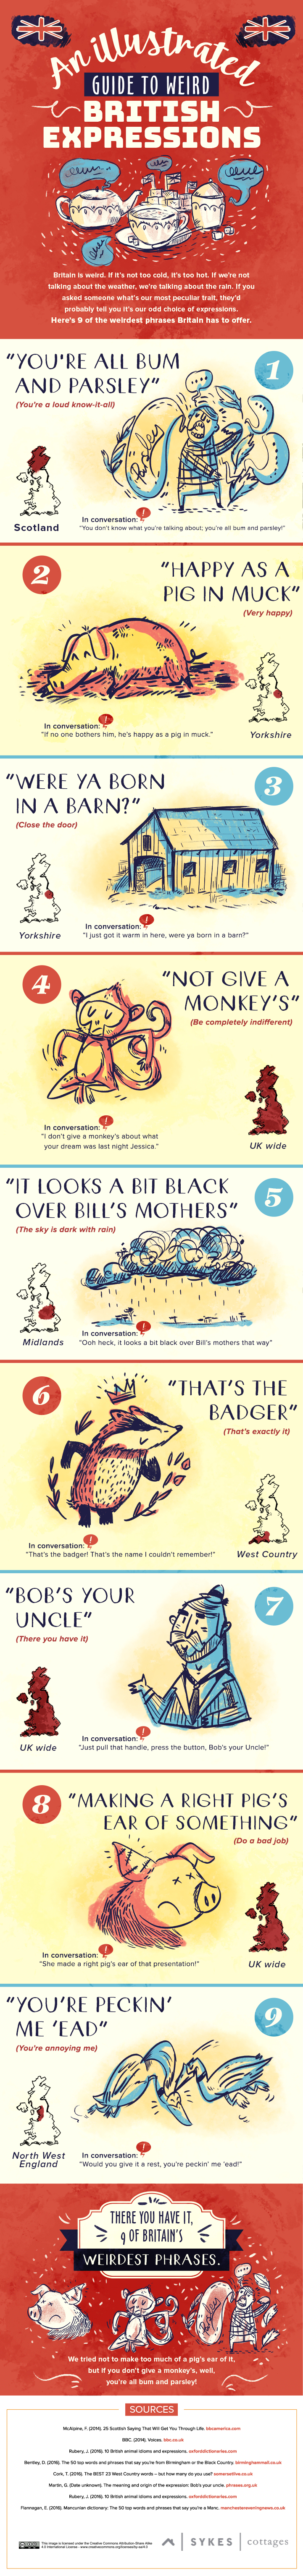 An Illustrated Guide to Weird British Expressions